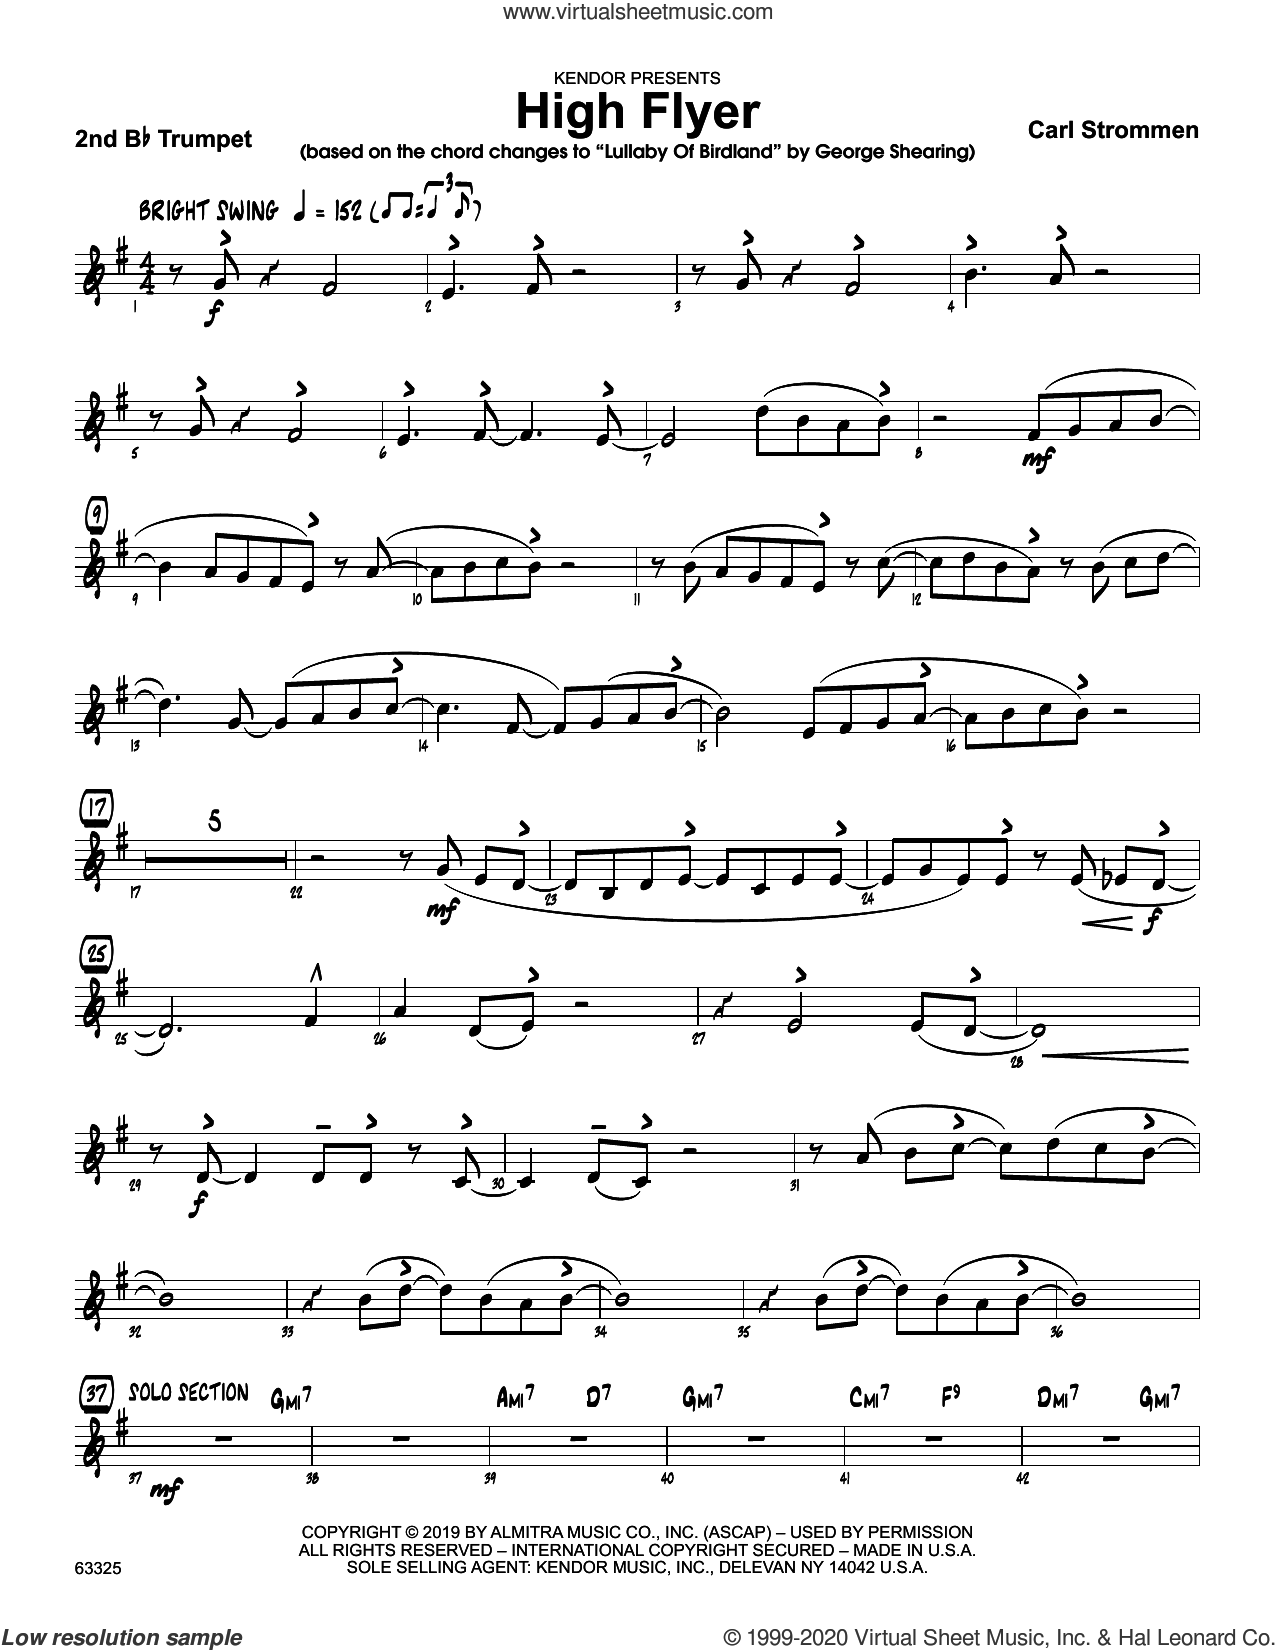 High Flyer sheet music for jazz band (2nd Bb trumpet) by Carl Strommen, intermediate skill level